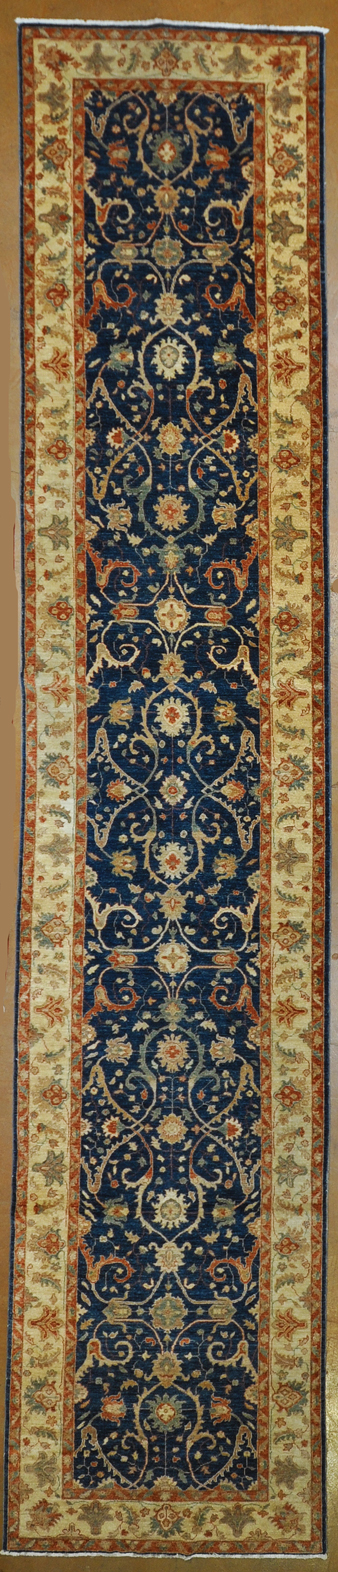 Ziegler & Co Oushak Blue rugs and more oriental carpet-